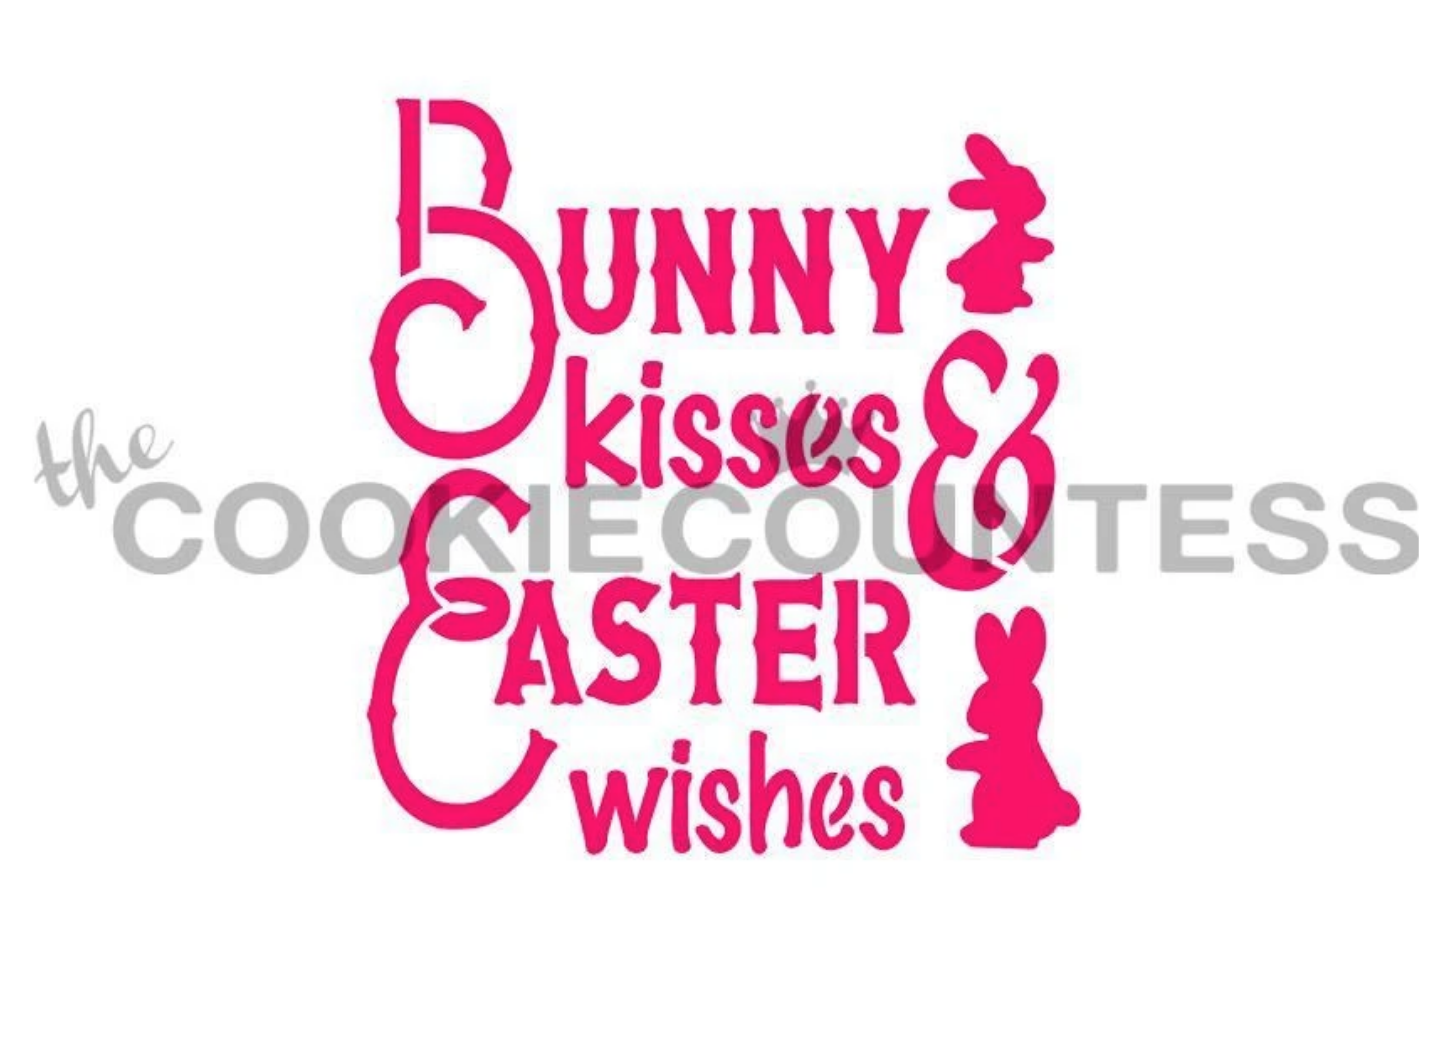 Bunny Kisses Stencil by Cookie Countess